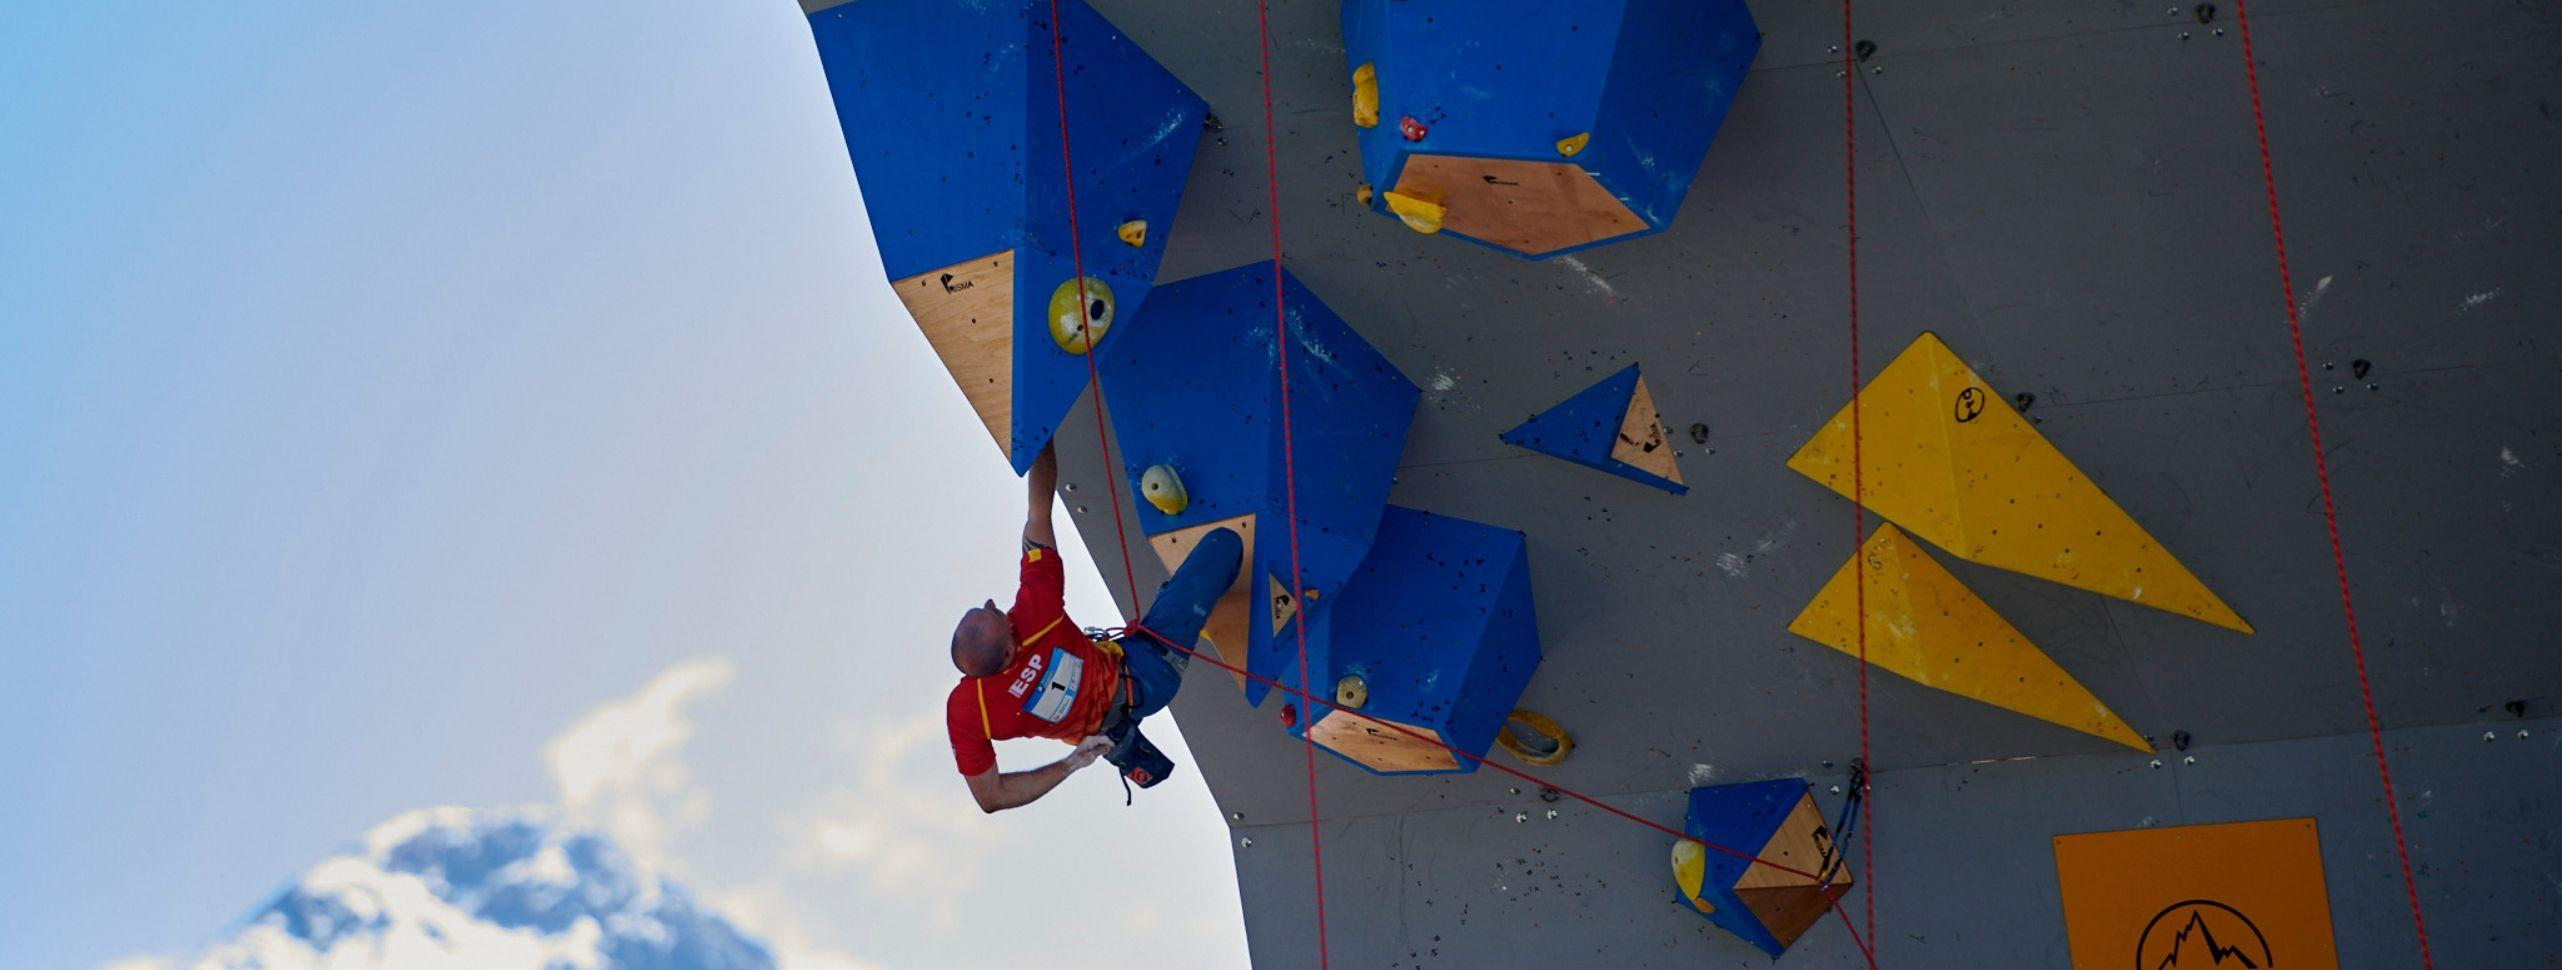 A Strong Start for the Paraclimbing World Championship